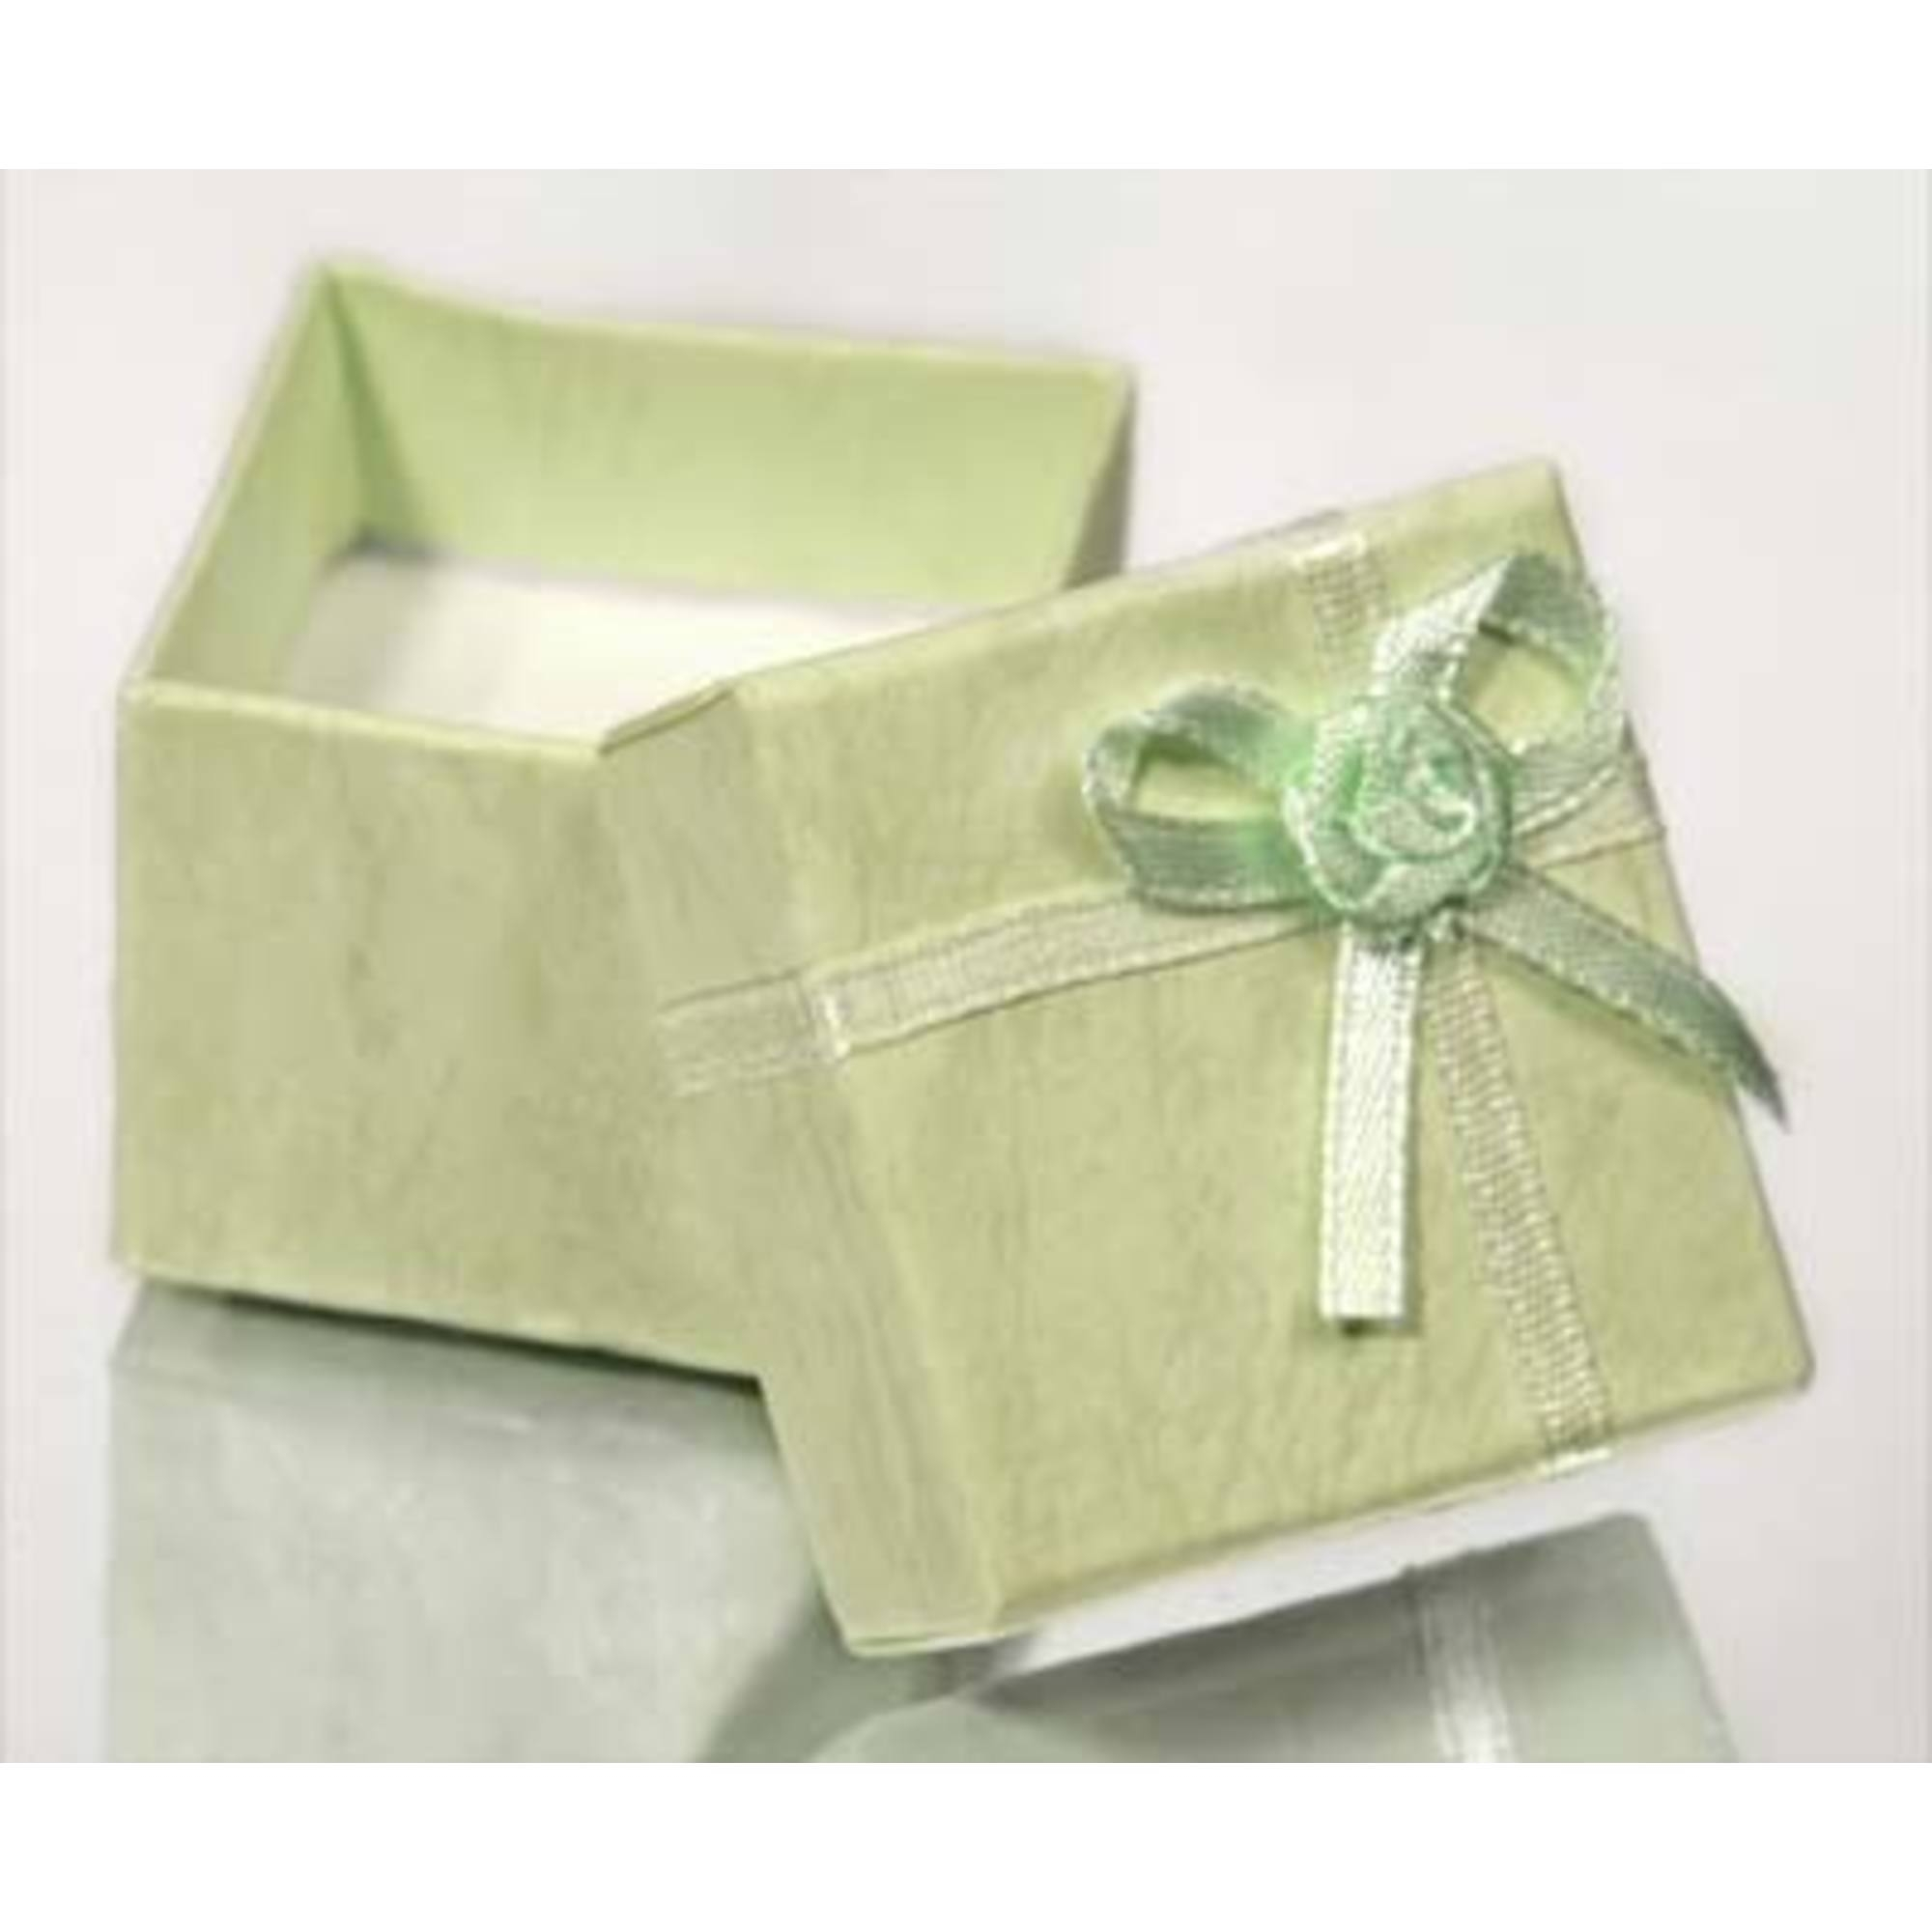 Jewellery Gift Box - Green